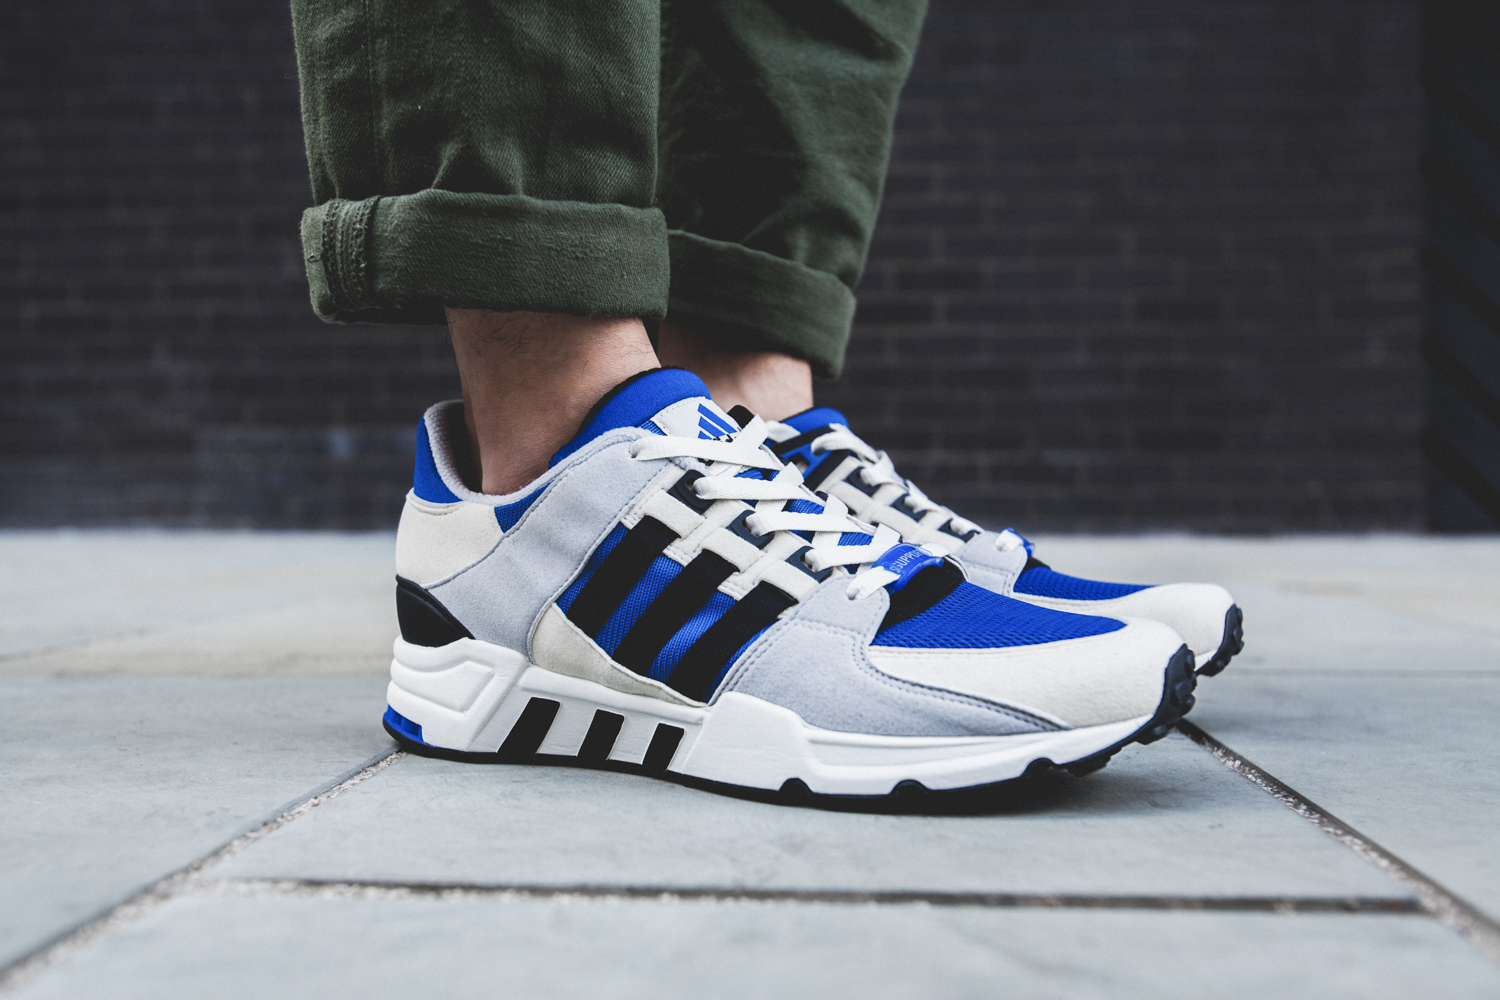 adidas EQT Running Support 93 OG Pack 7